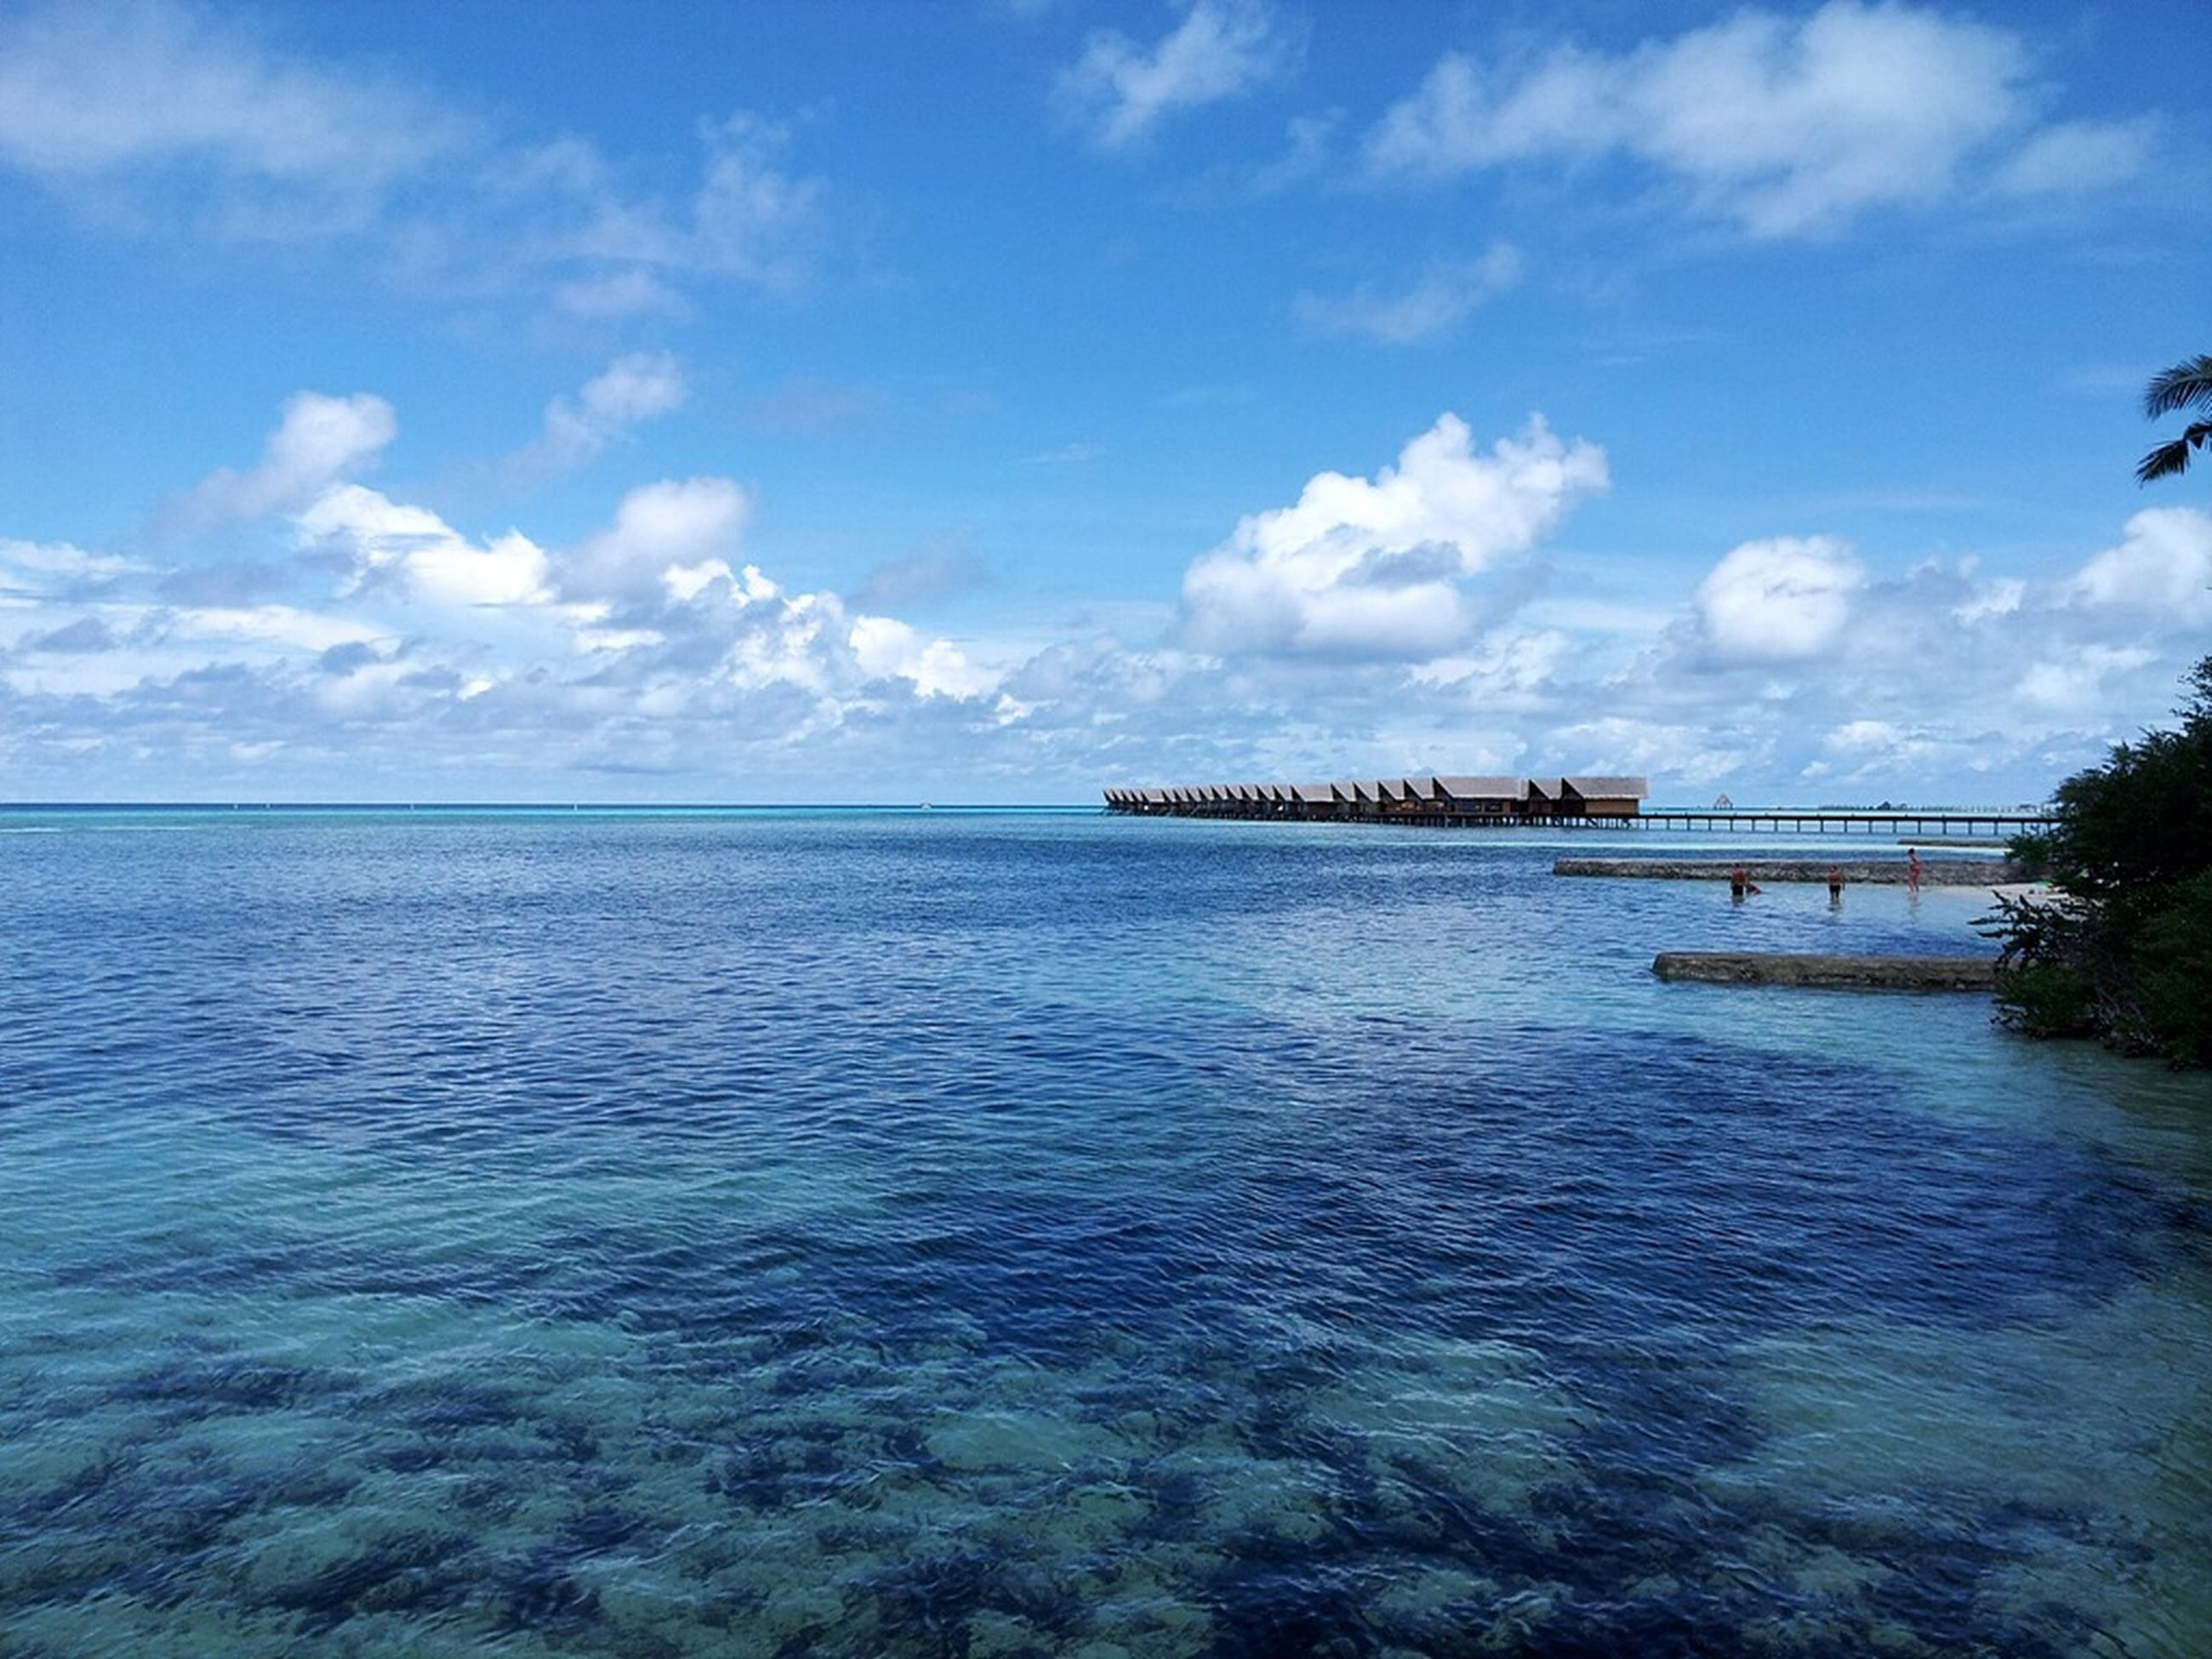 water, sea, sky, tranquil scene, tranquility, scenics, cloud - sky, waterfront, beauty in nature, horizon over water, cloud, nature, blue, rippled, built structure, pier, idyllic, architecture, calm, day